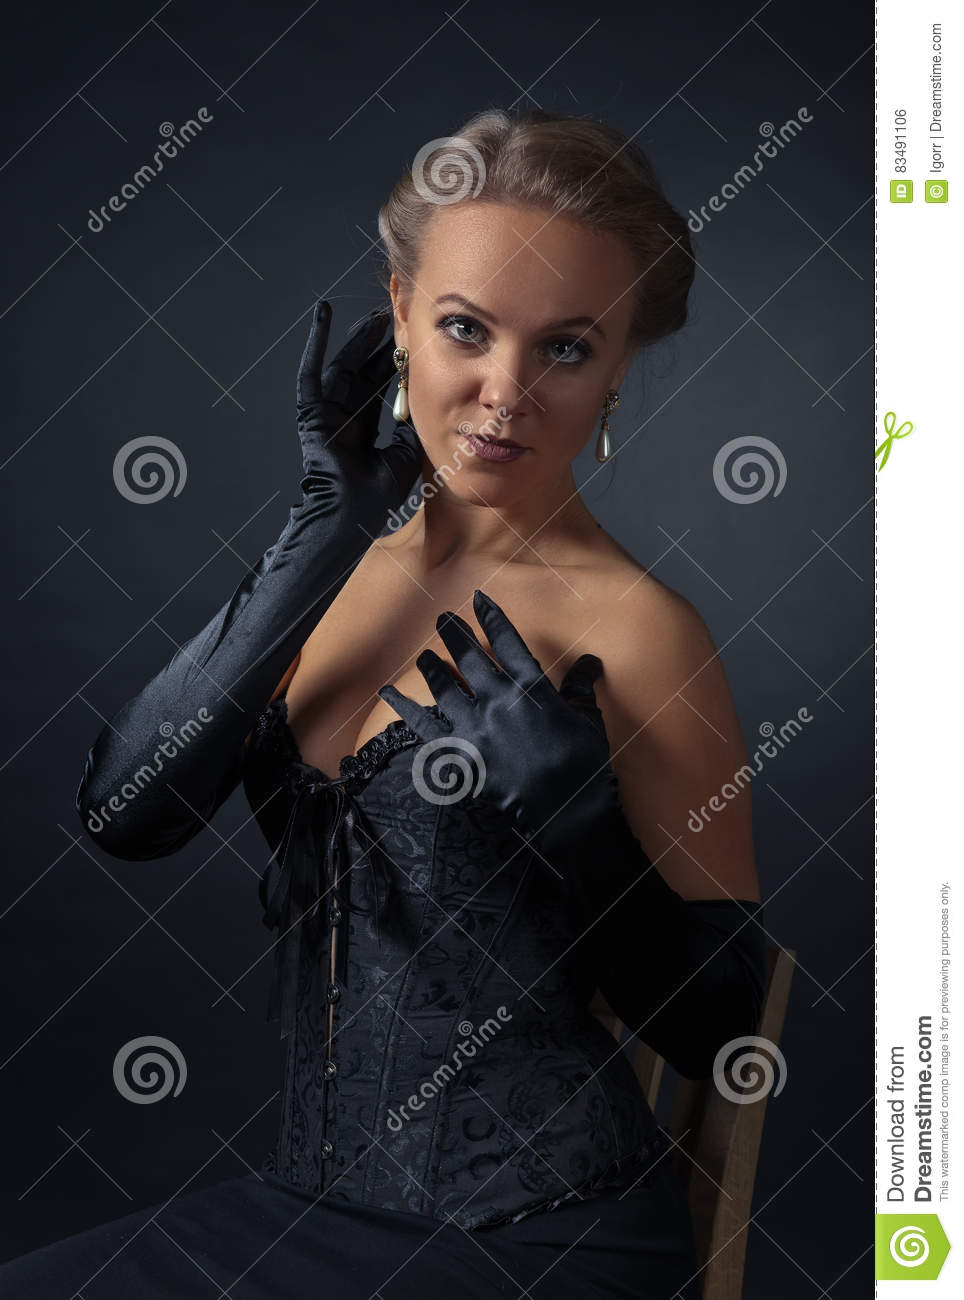 Young Beautiful Woman In Black Corset With Pearl Earrings